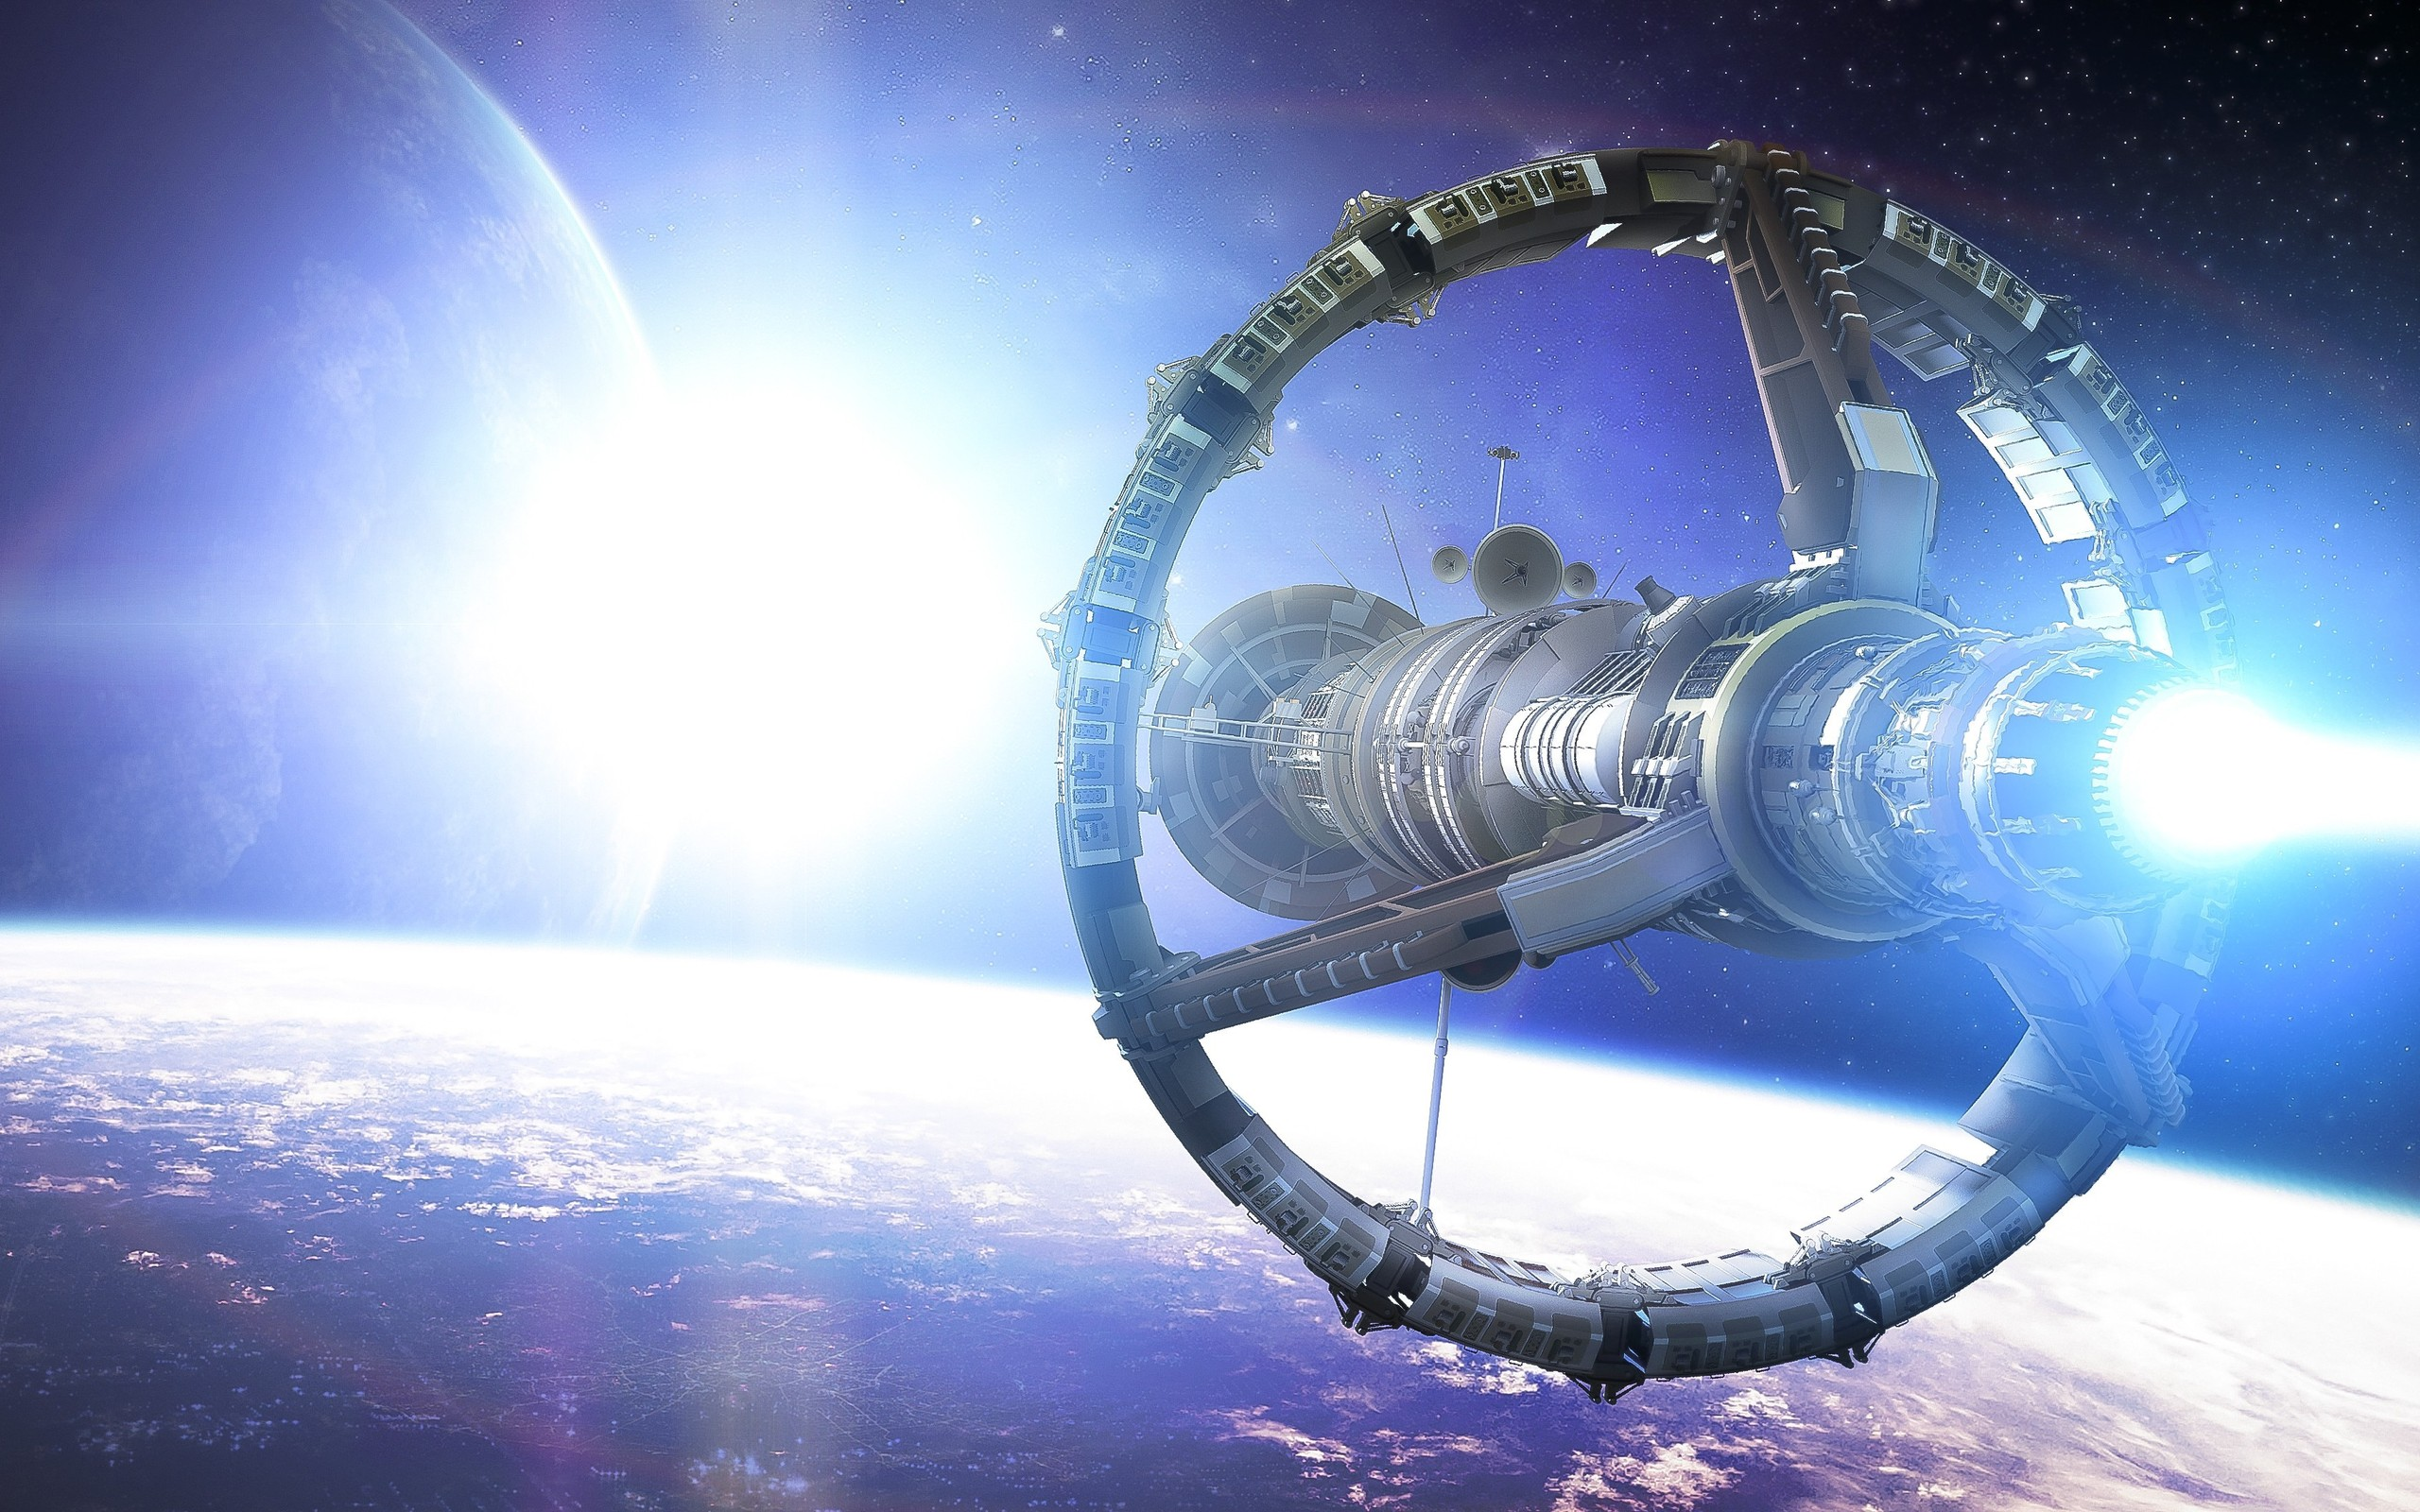 Spaceship Full HD Wallpaper and Background Image